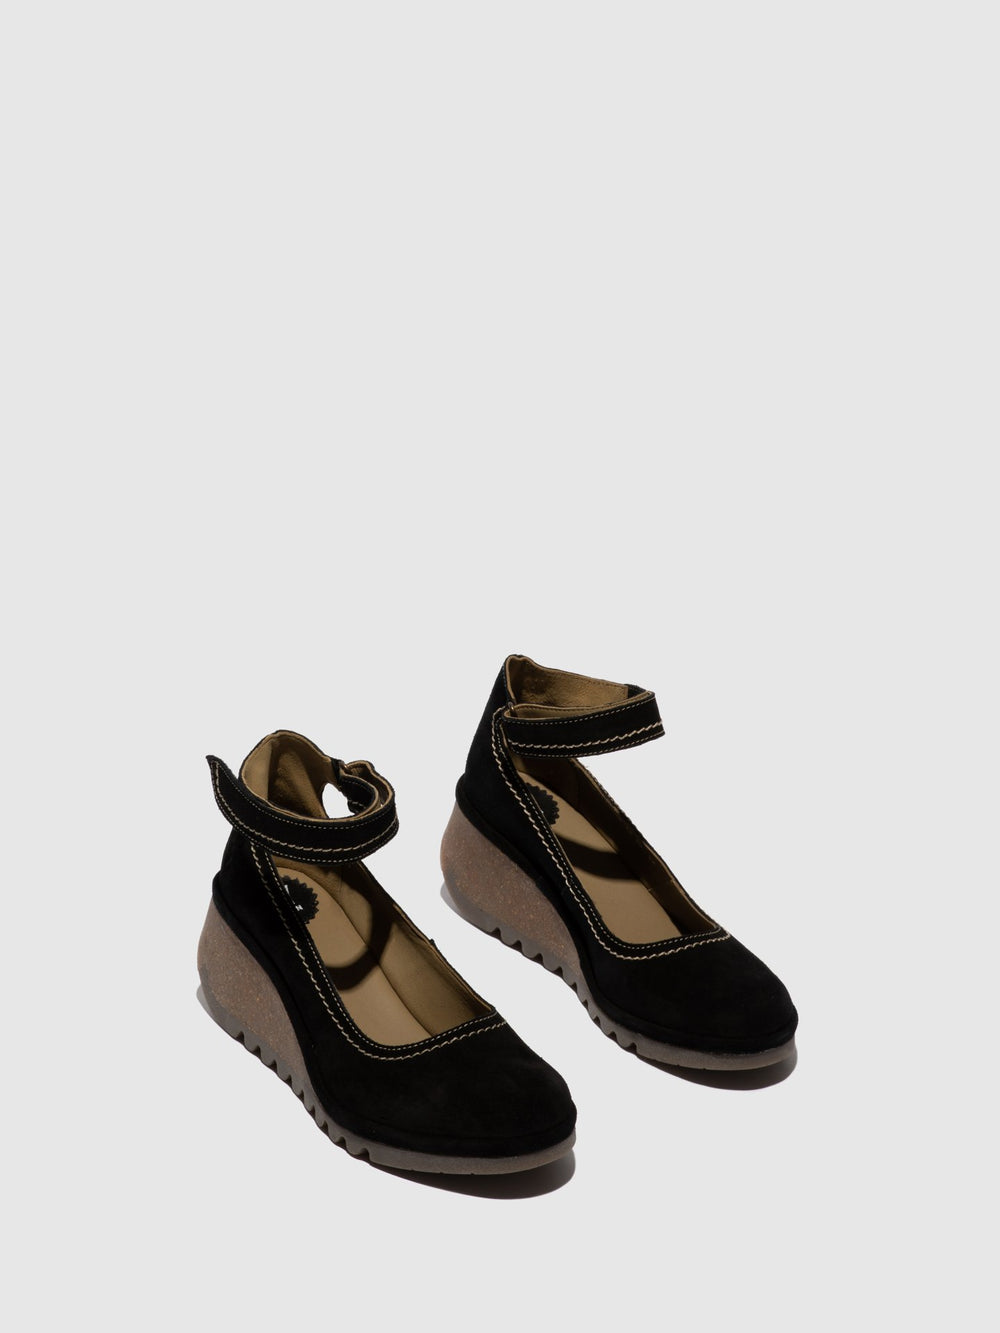 Black Suede Wedge Shoes